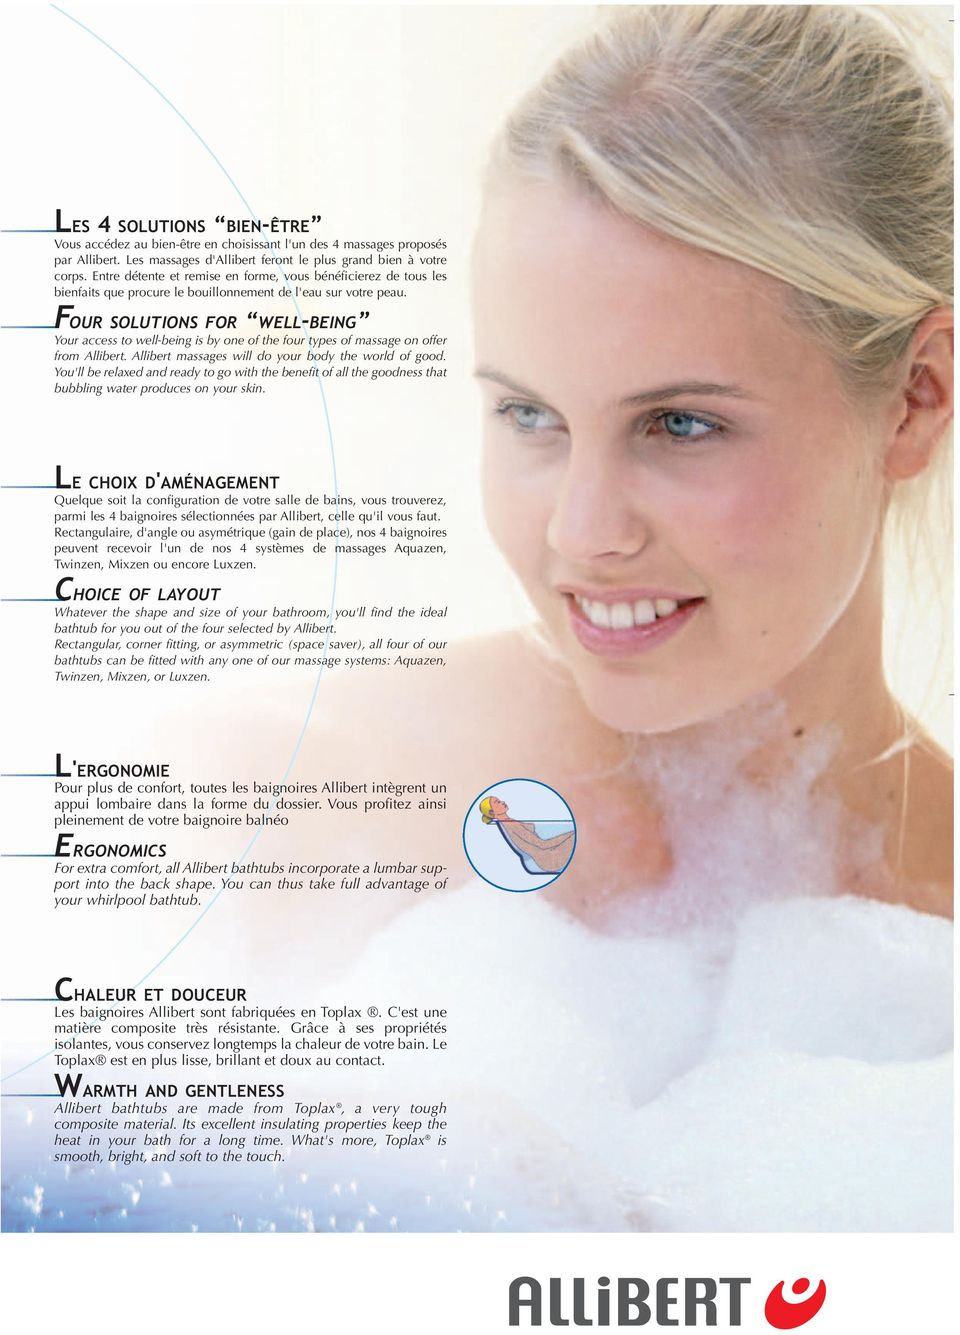 offer from Allibert Allibert massages will do your body the world of good You'll be relaxed and ready to go with the benefit of all the goodness that bubbling water produces on your skin LE CHOIX